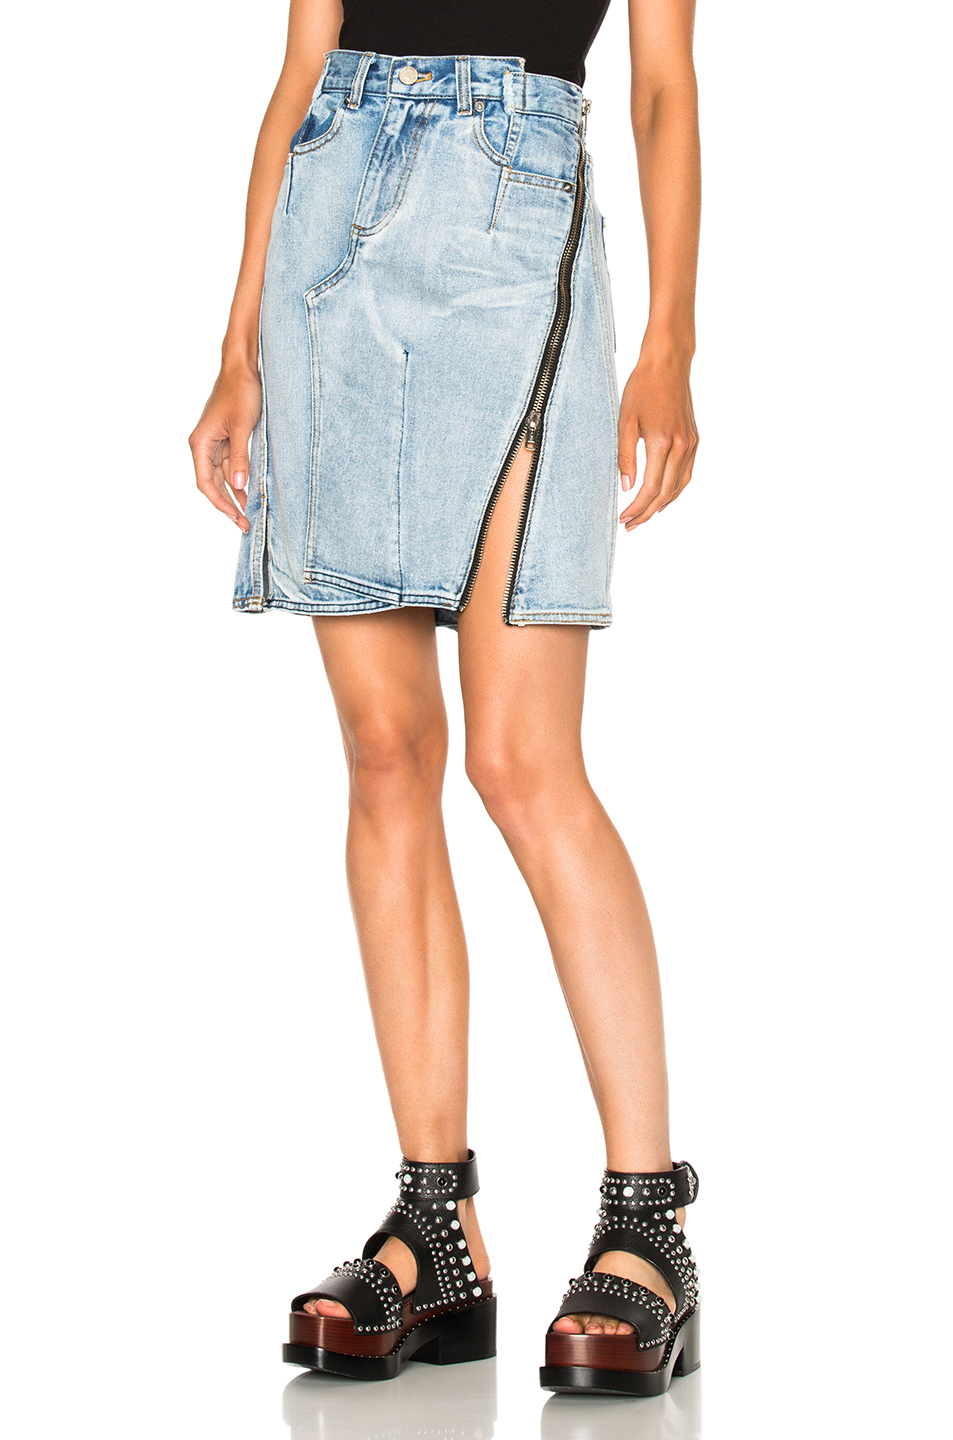 3.1 phillip lim Asymmetrical Skirt with Zipper in Blue